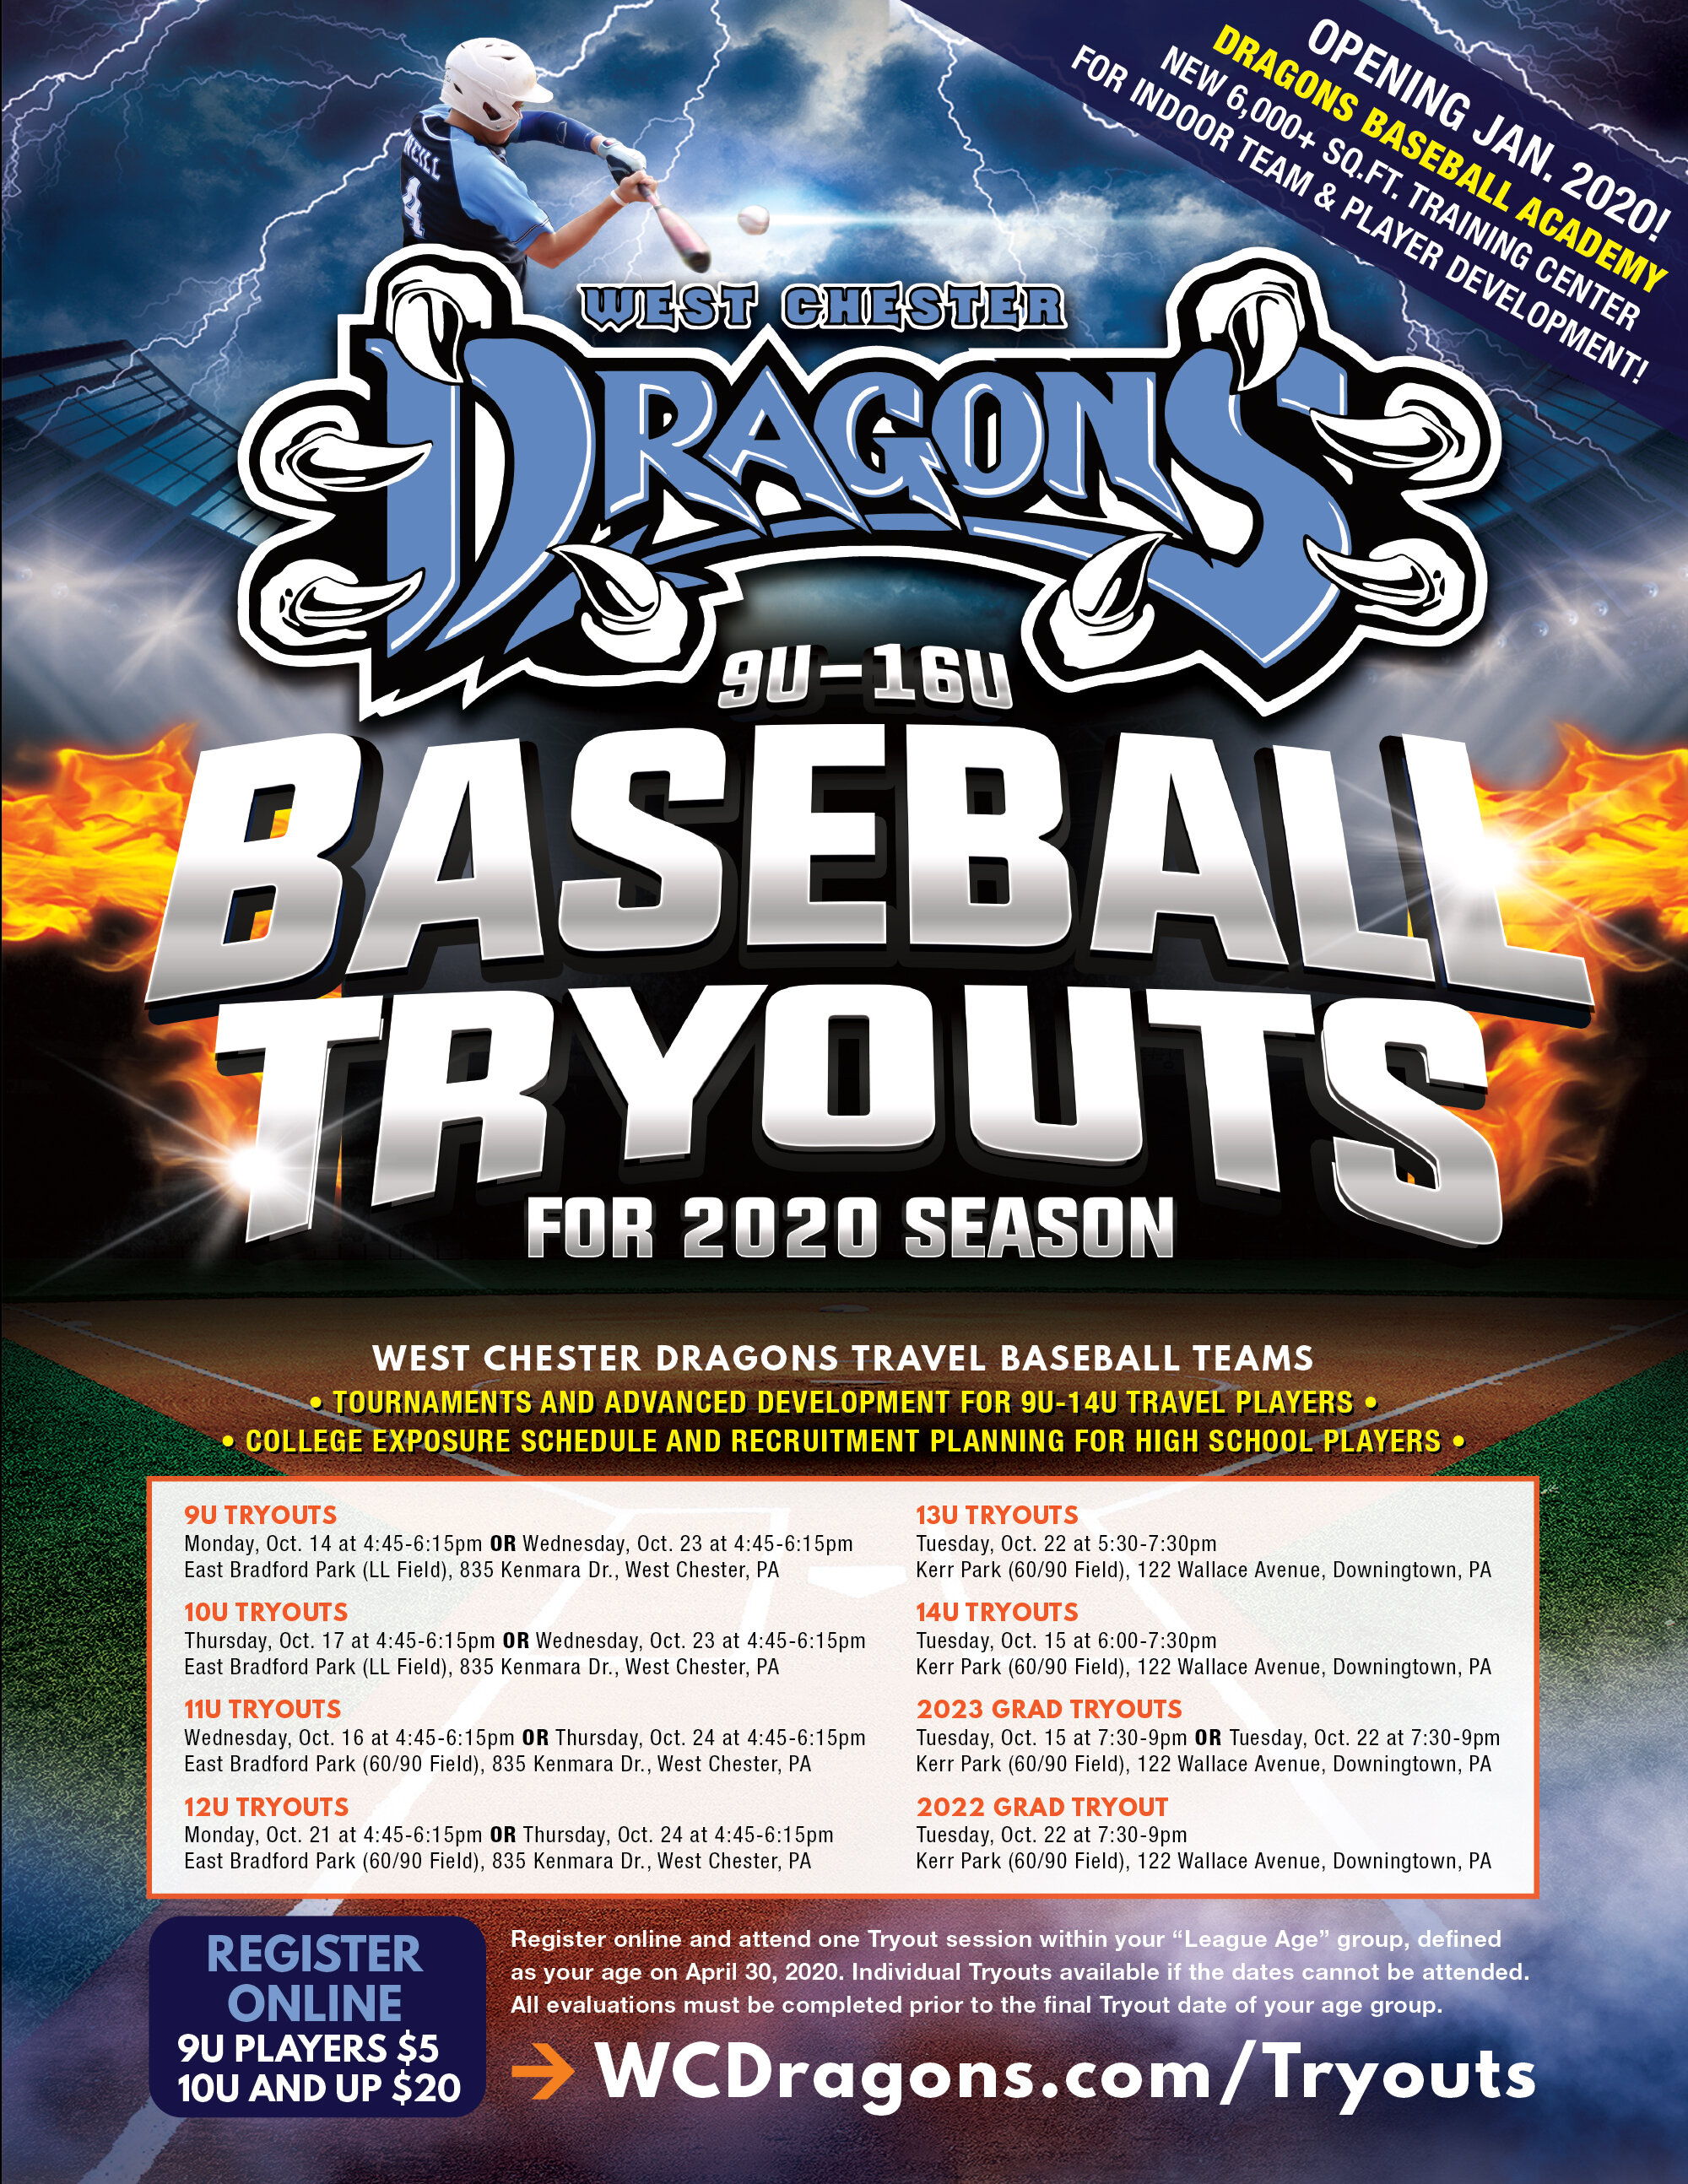 2020 Tryouts for the West Chester Dragons Travel Baseball Teams